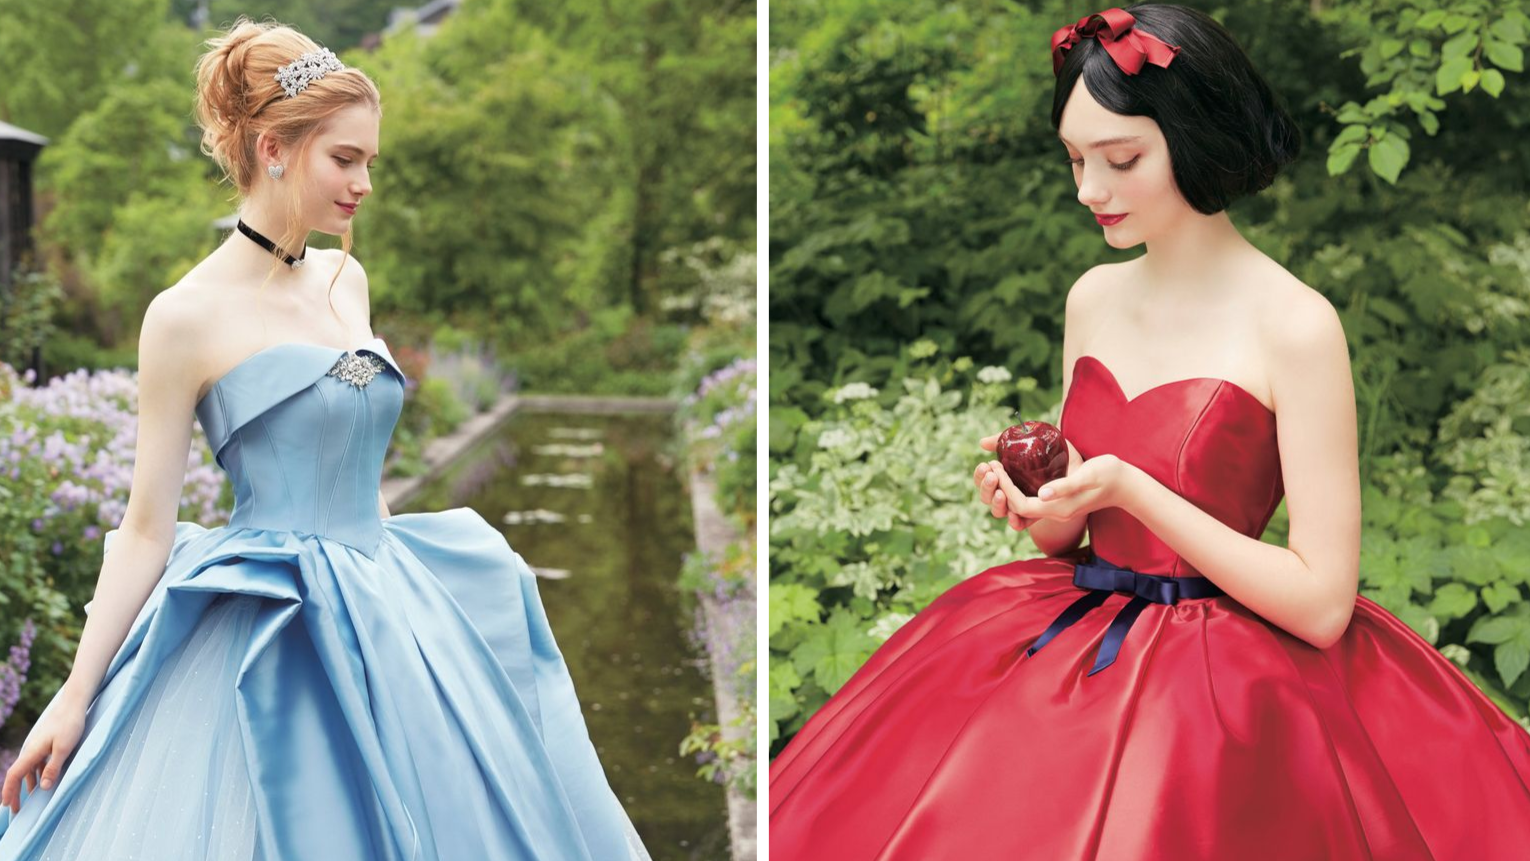 These Disney Princess Wedding Gowns Are What Fairy Tale Dreams Are ...